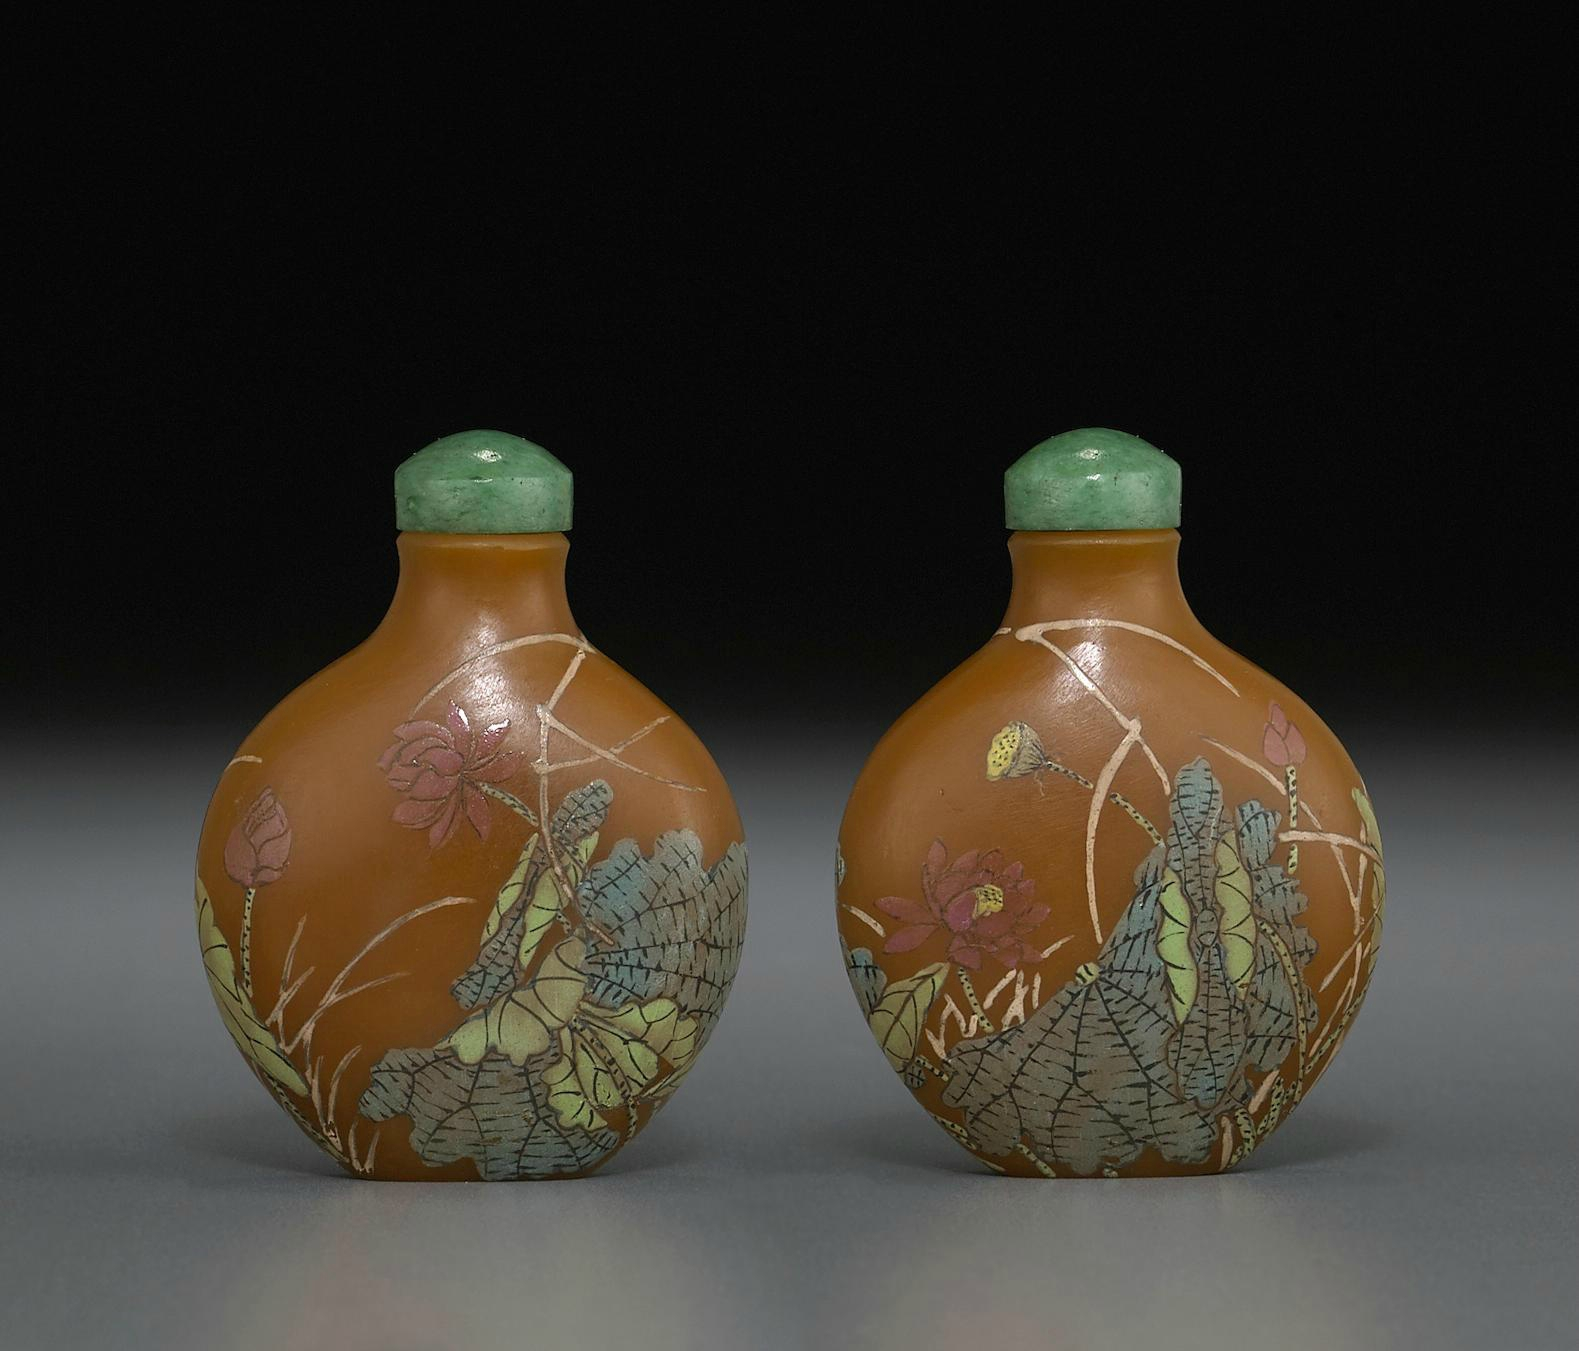 A rare enameled caramel glass snuff bottle, Guyue Xuan mark, 1770-1799